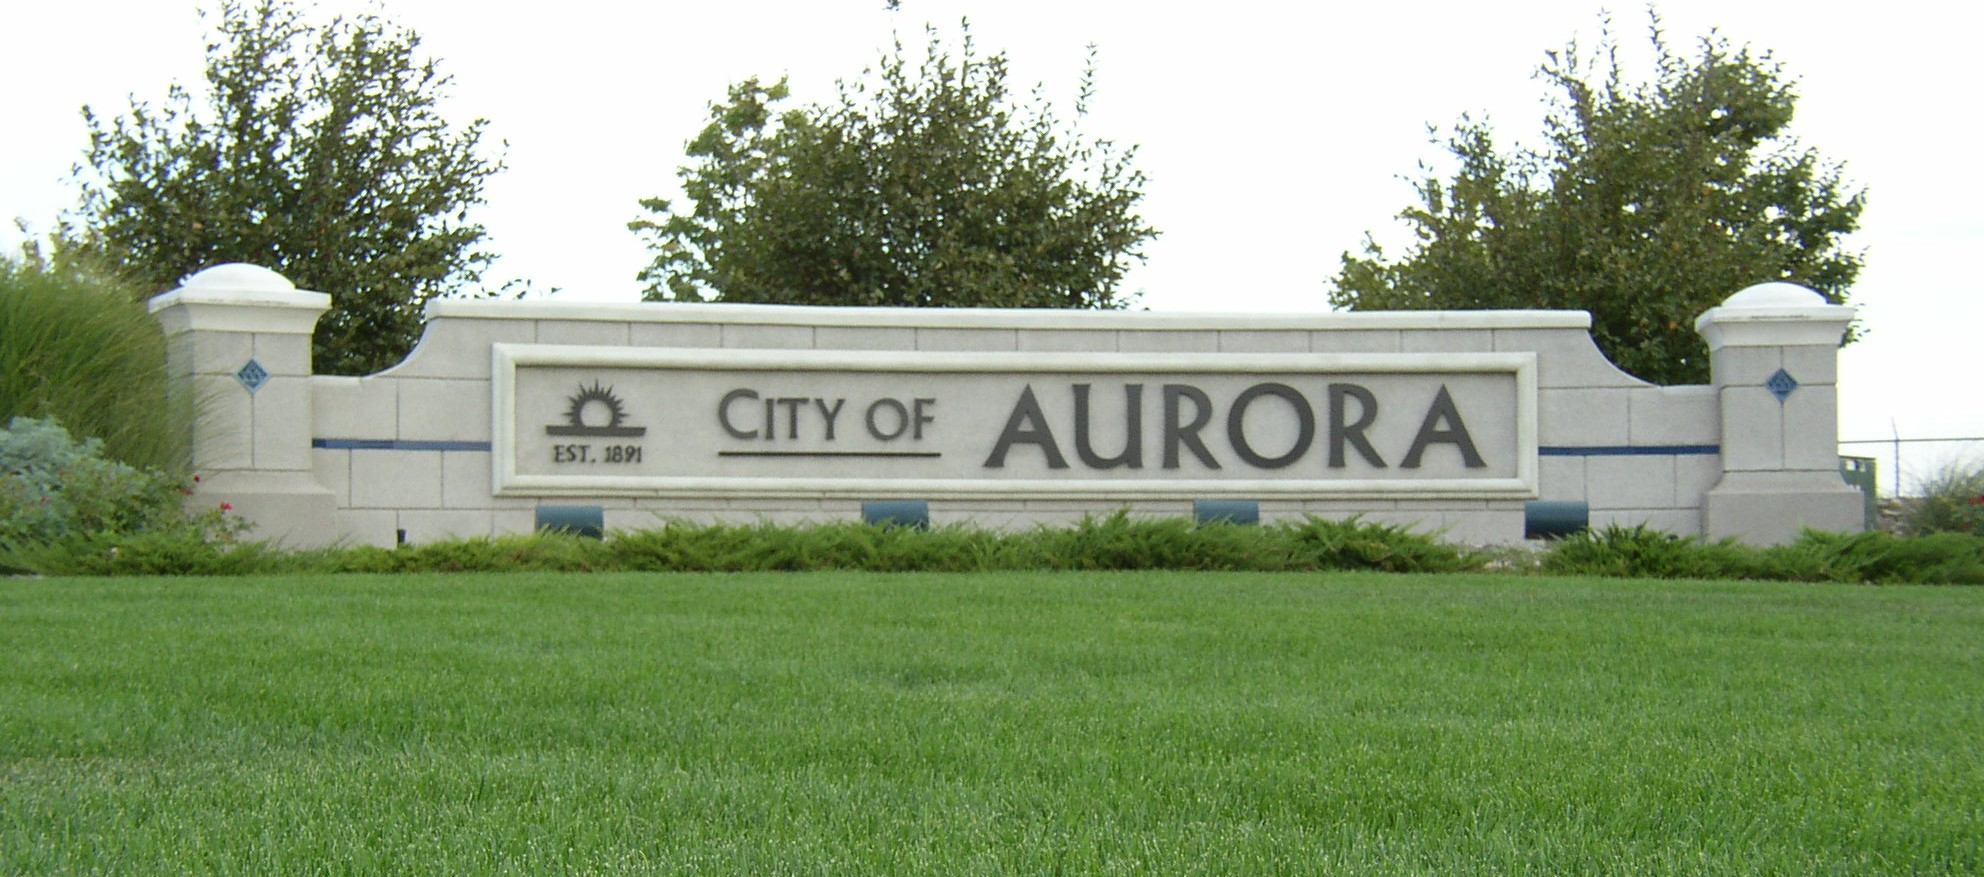 Colorado County Clerk S Political Activity Leads Aurora To